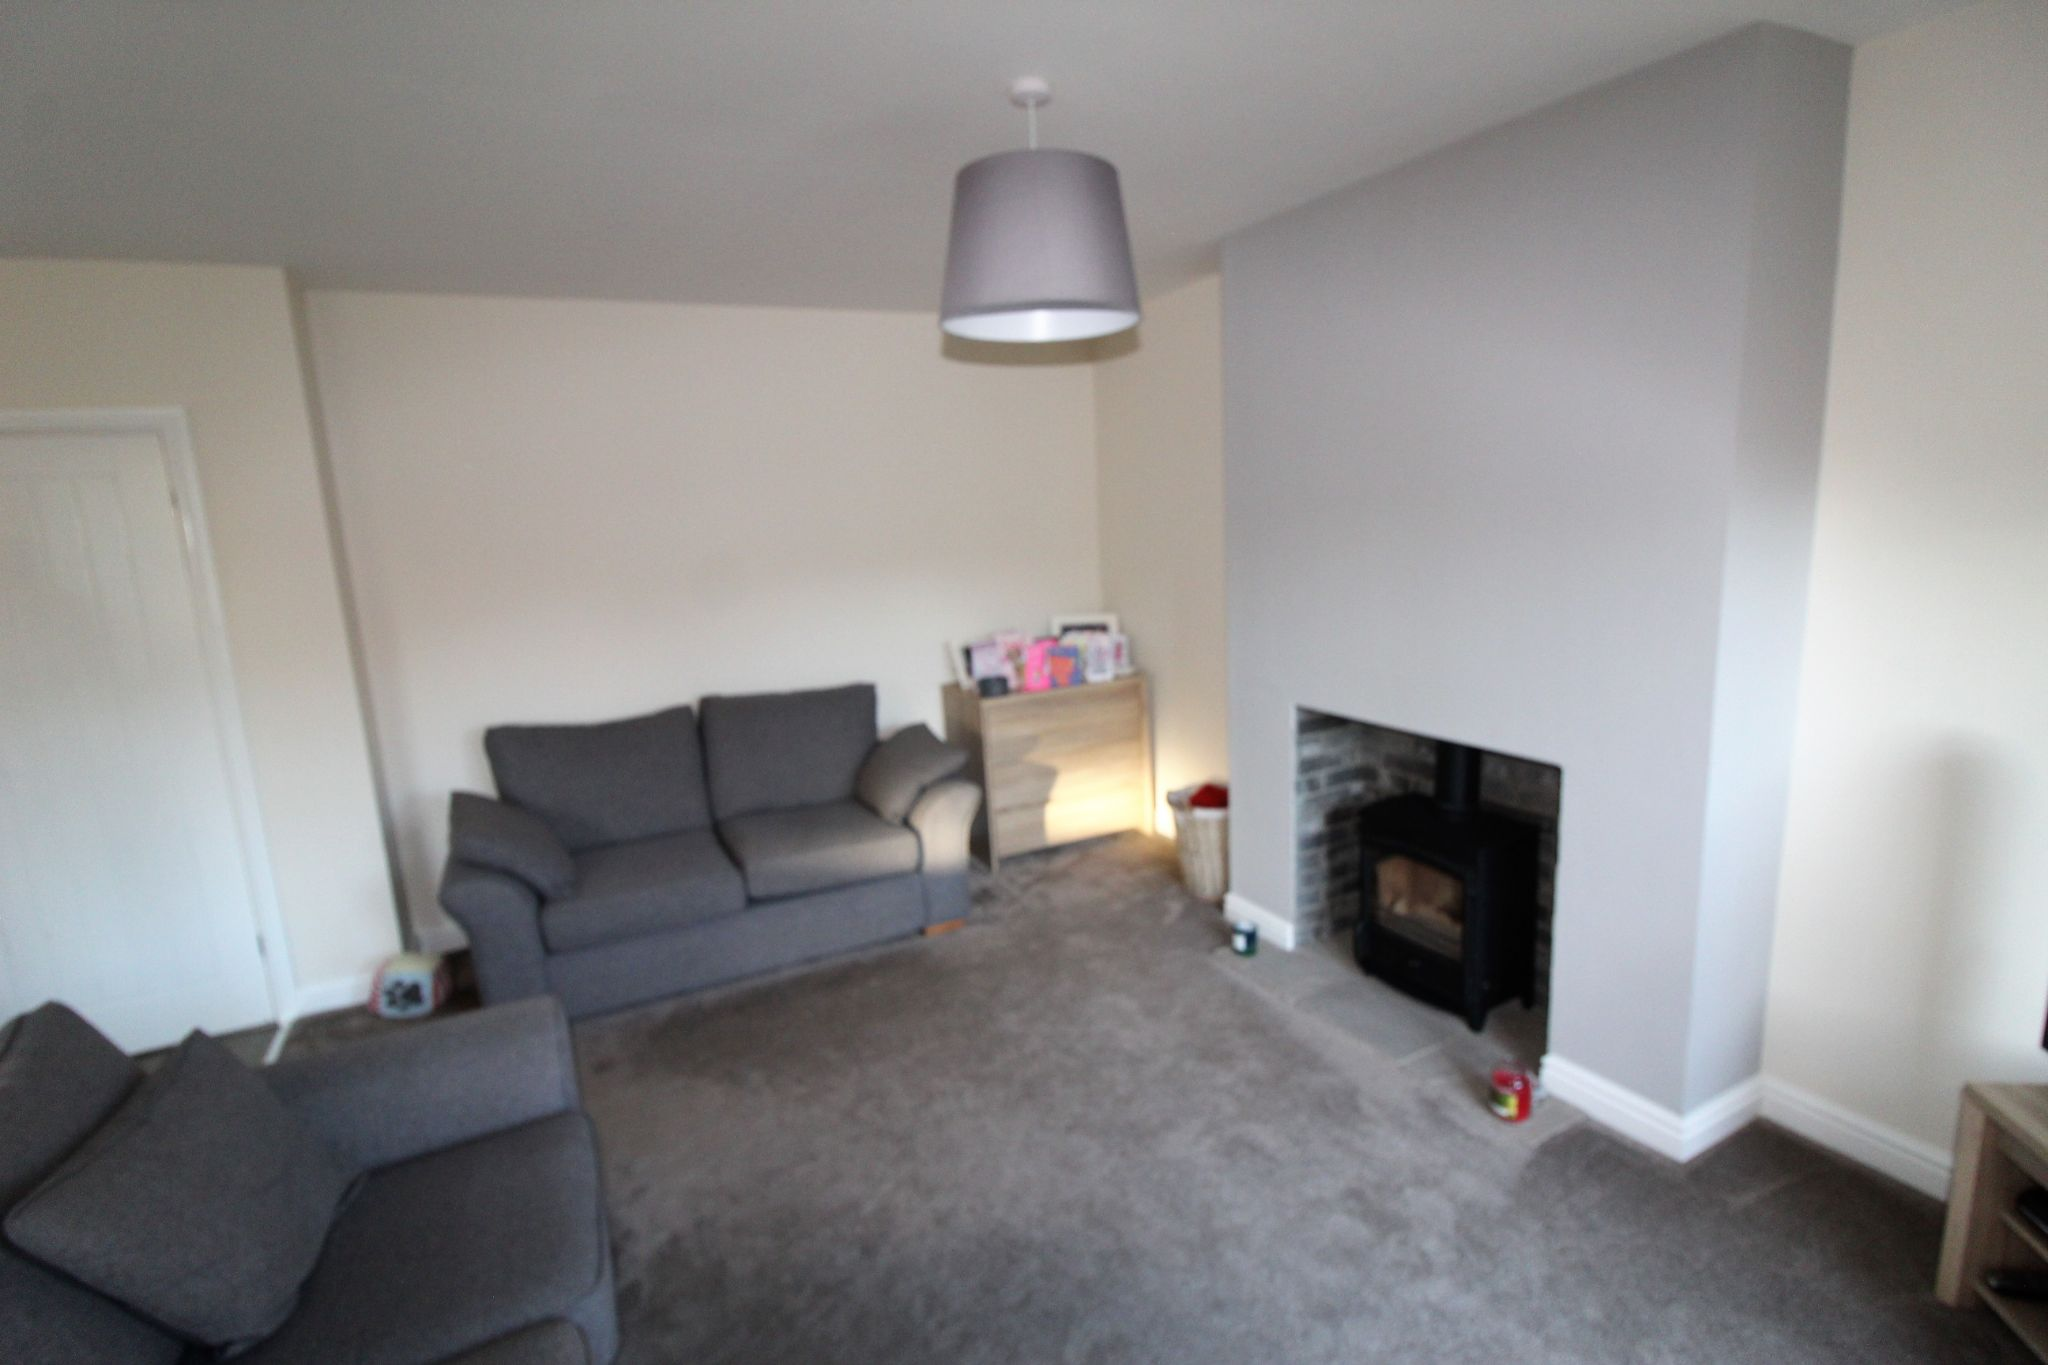 4 bedroom semi-detached bungalow SSTC in Brighouse - Lounge - picture 2